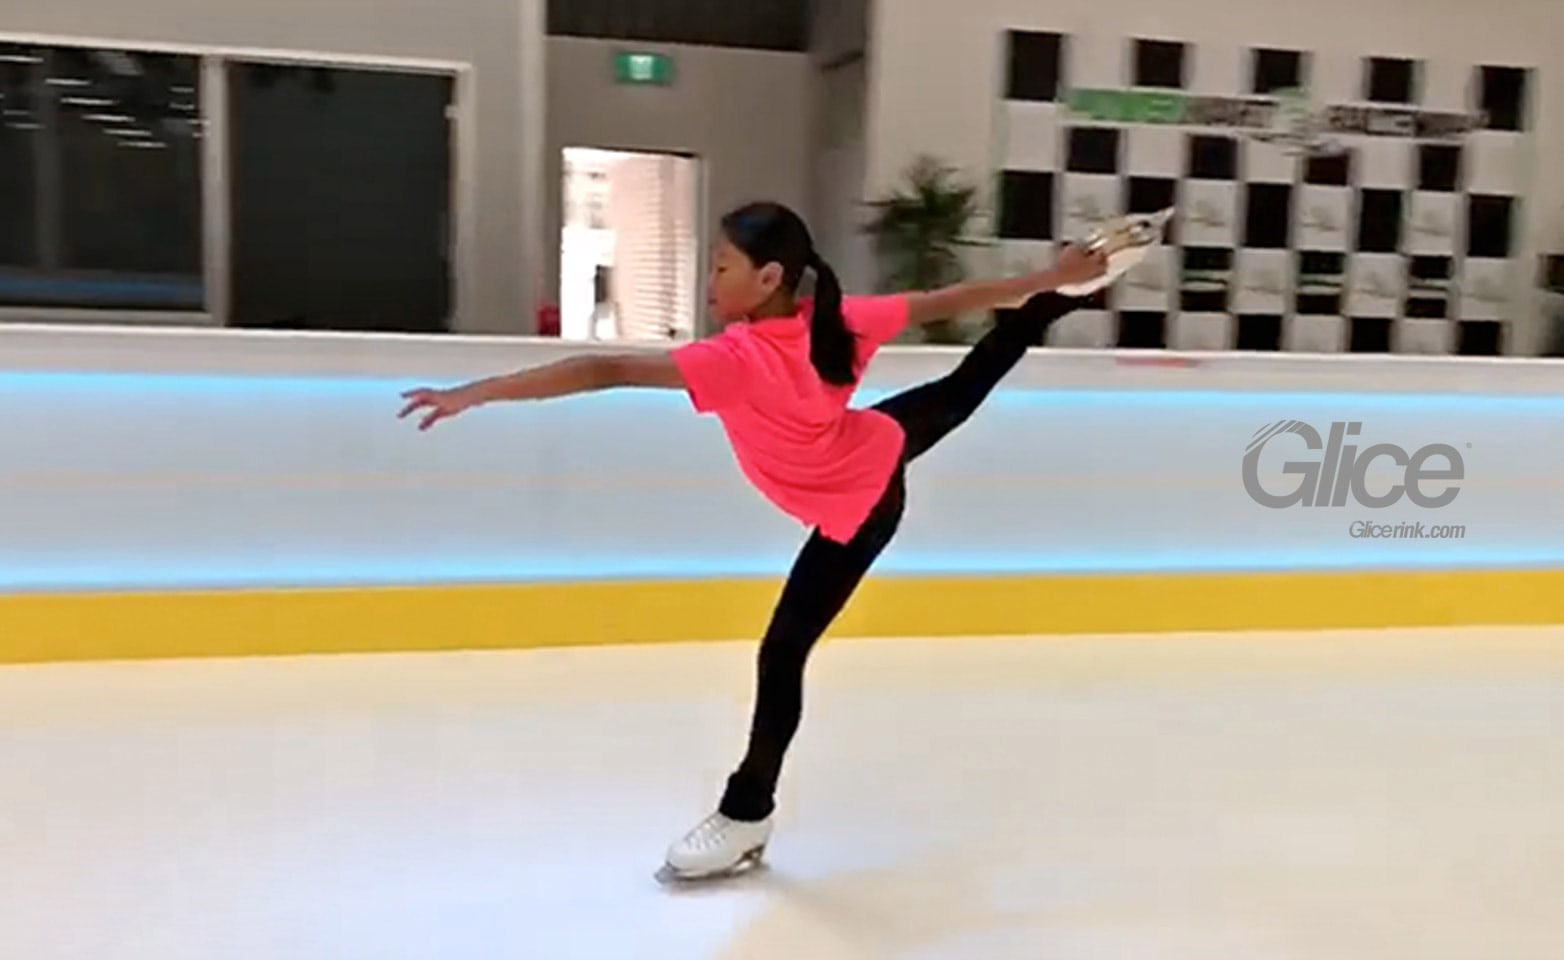 Up and coming figure skater on first synthetic ice rink in Melbourne